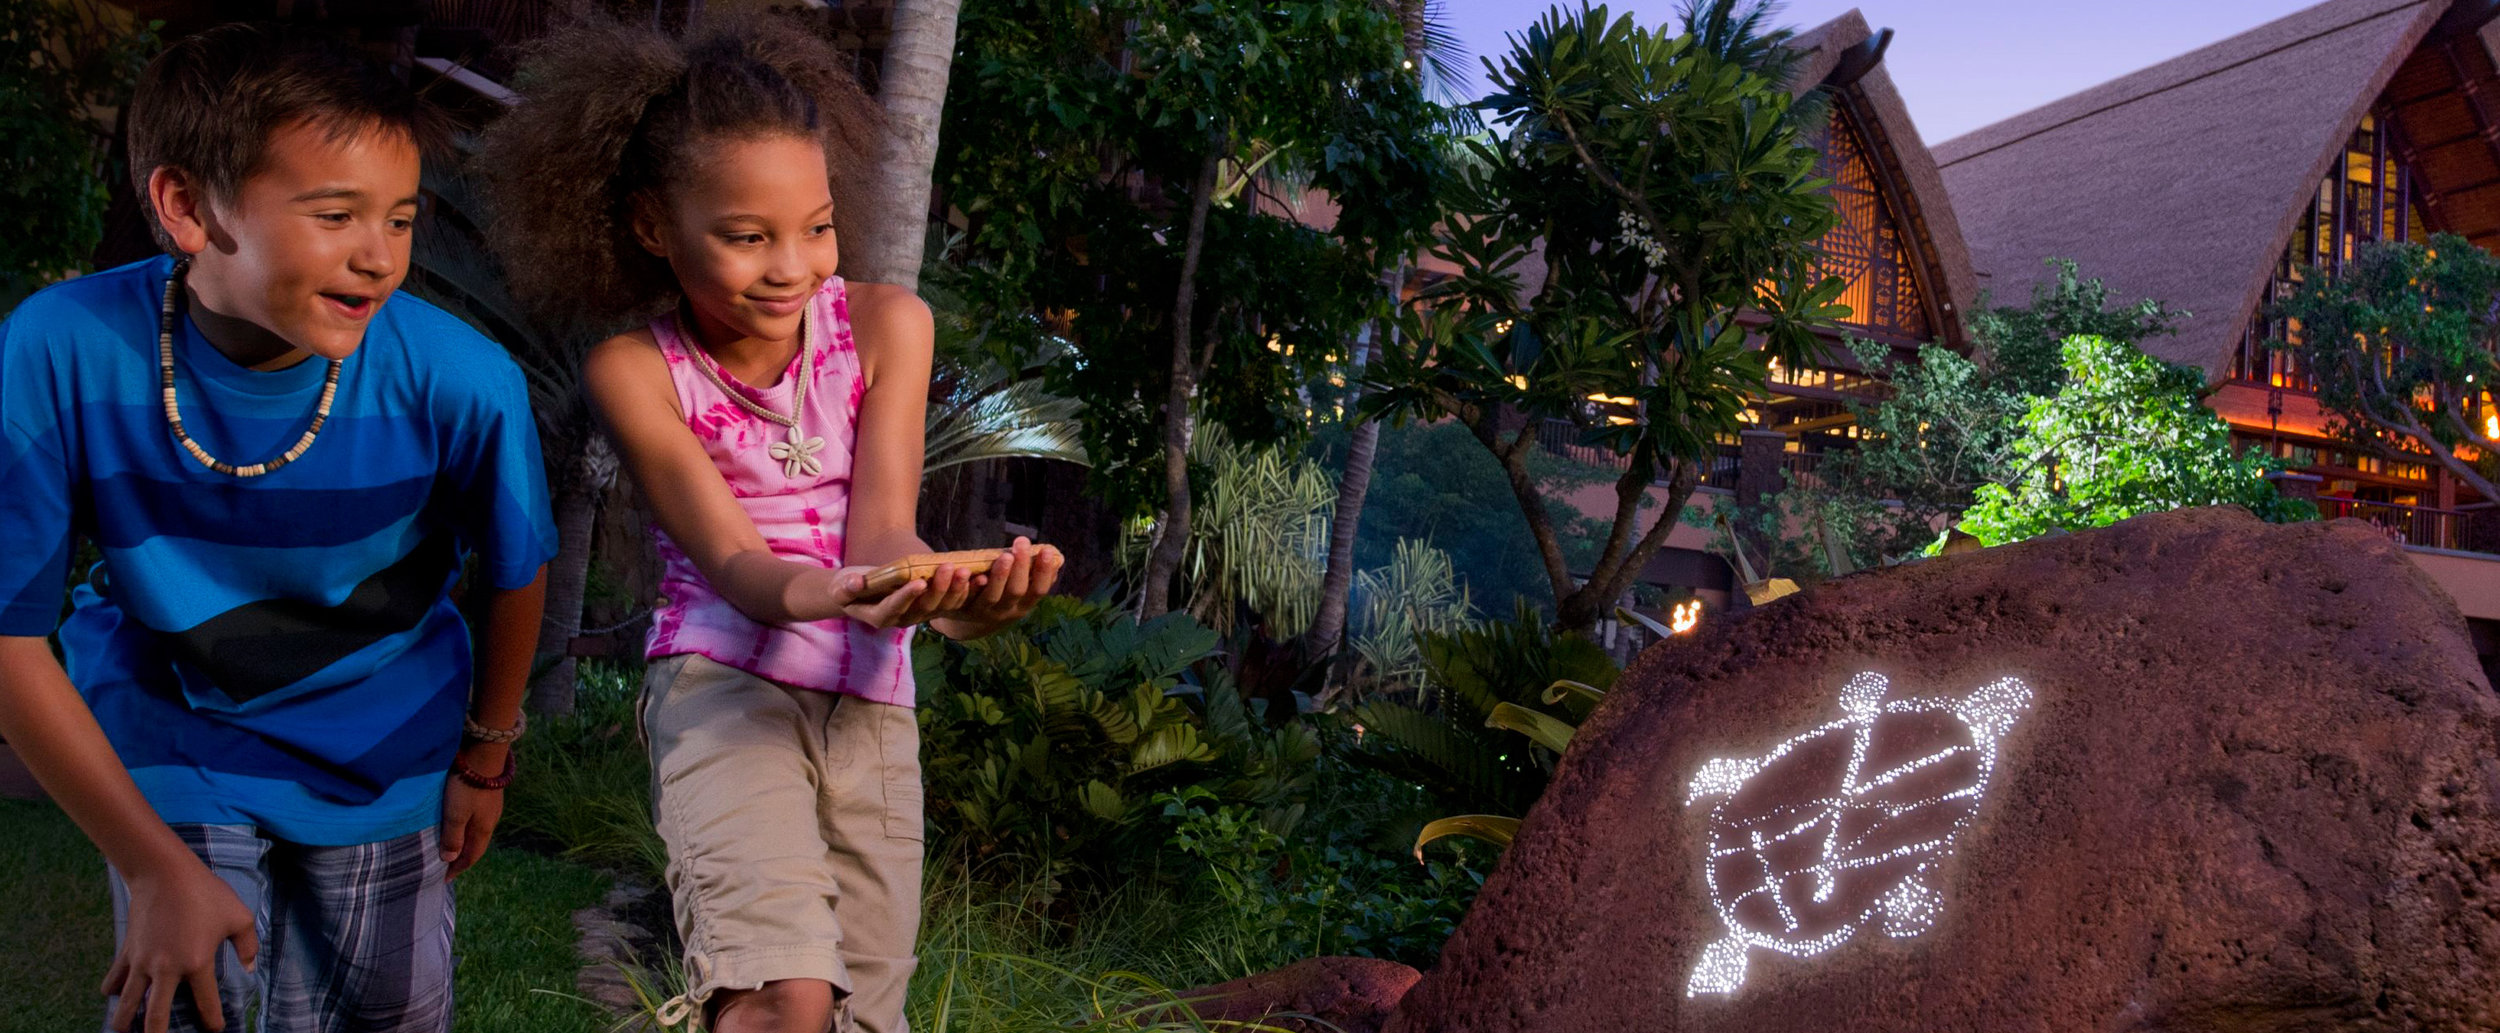 aulani-menehune-adventure-trail-kids-discover-turtle-hero-g.jpg